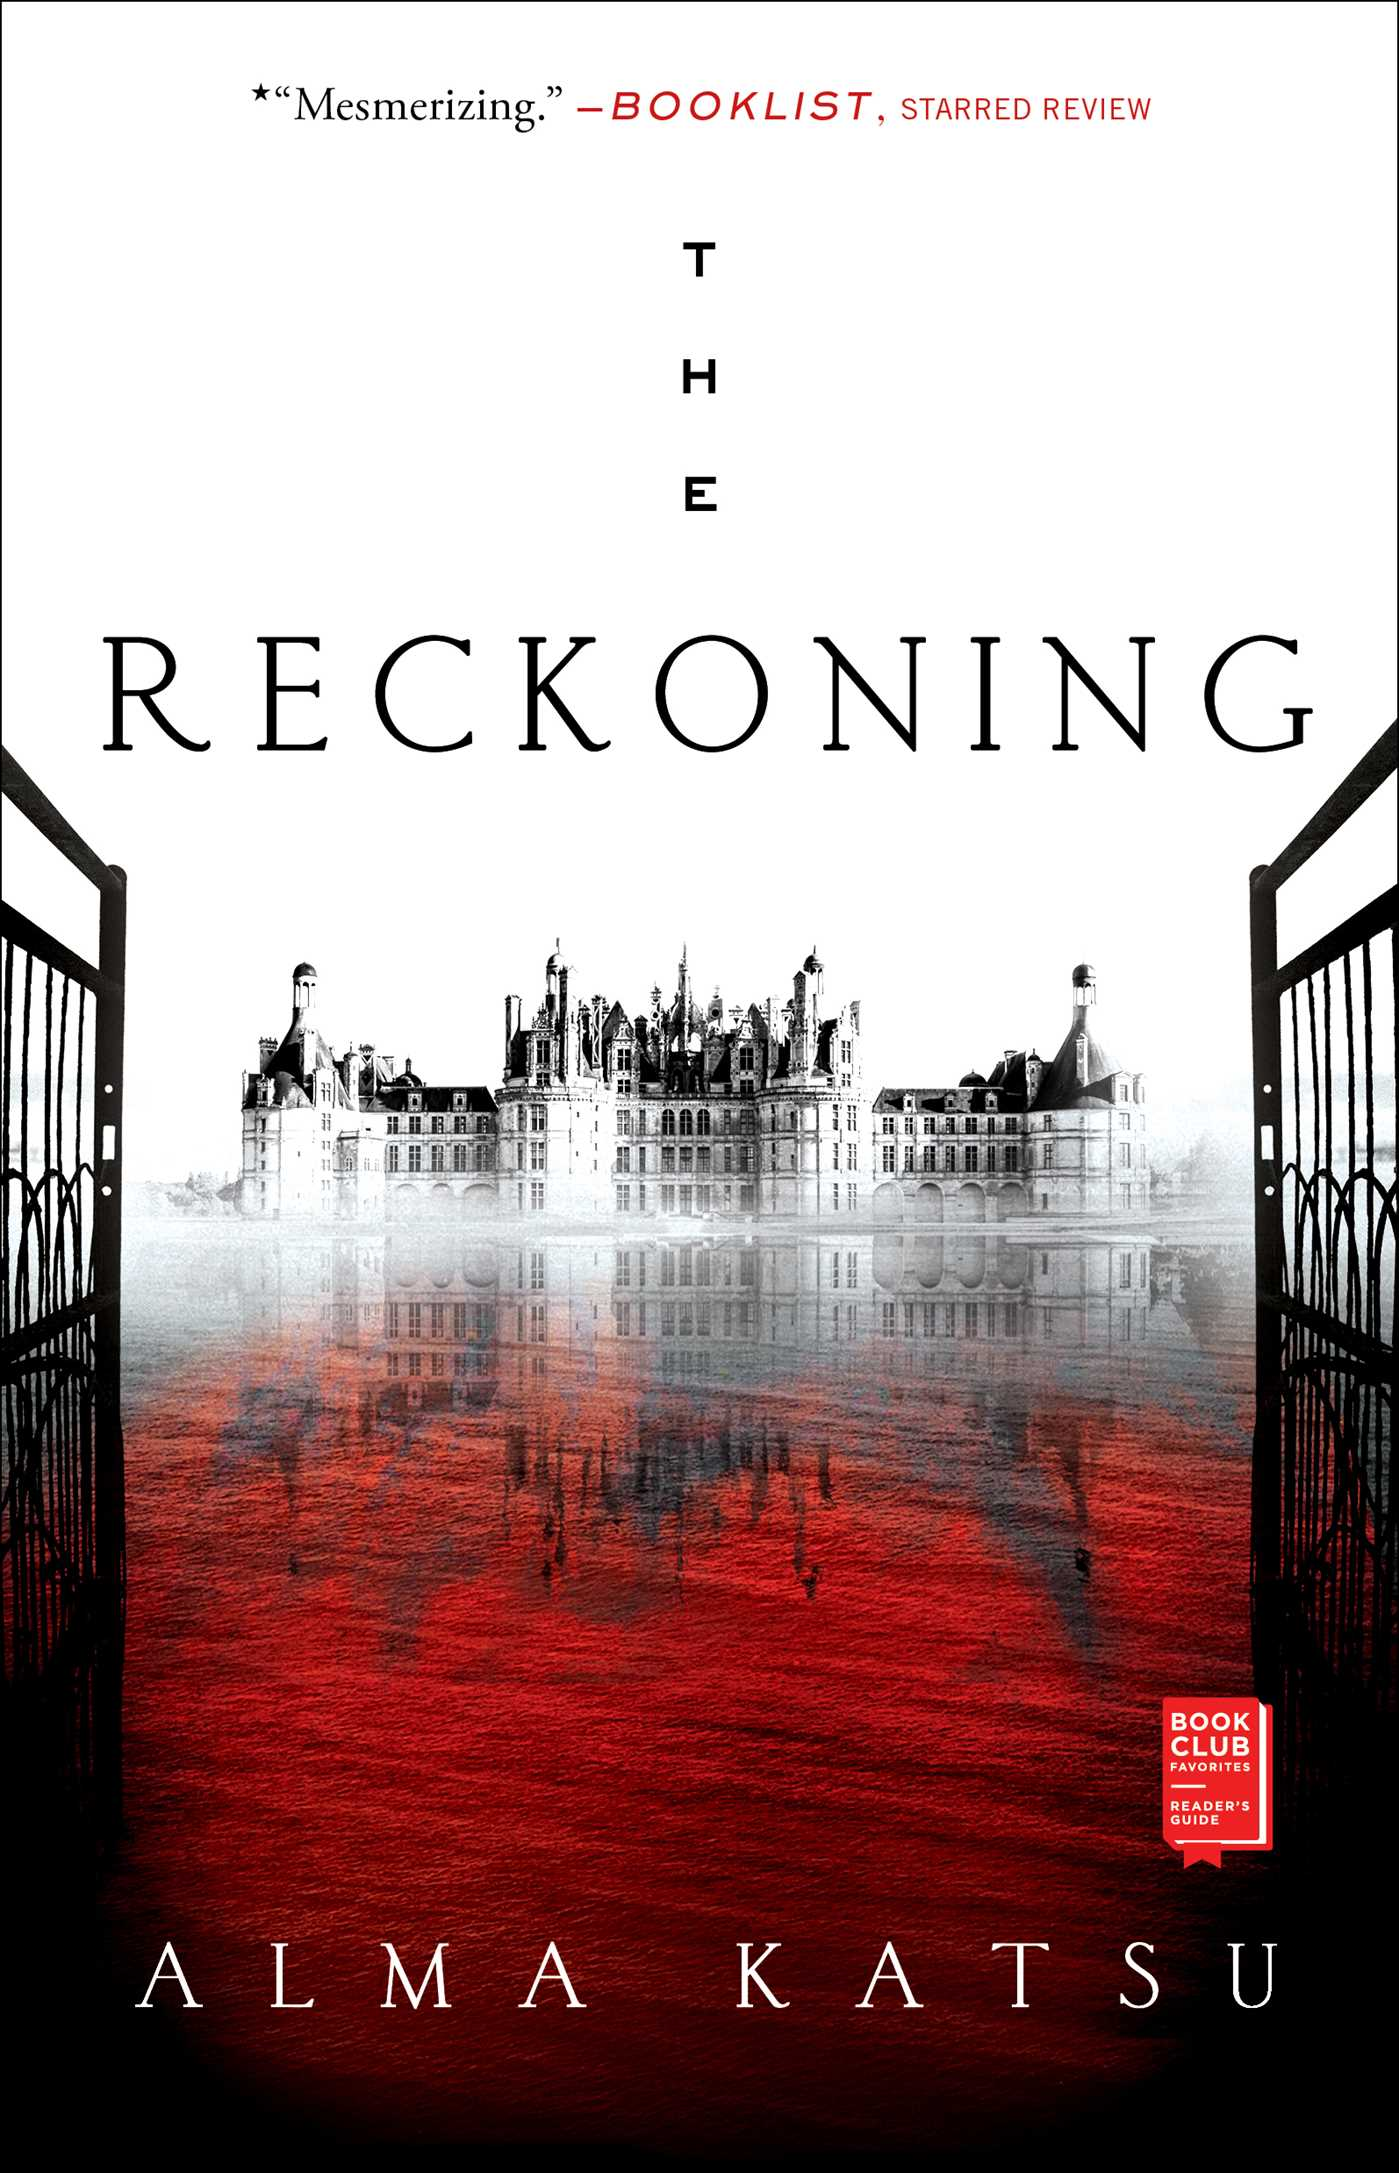 The reckoning 9781451651843 hr